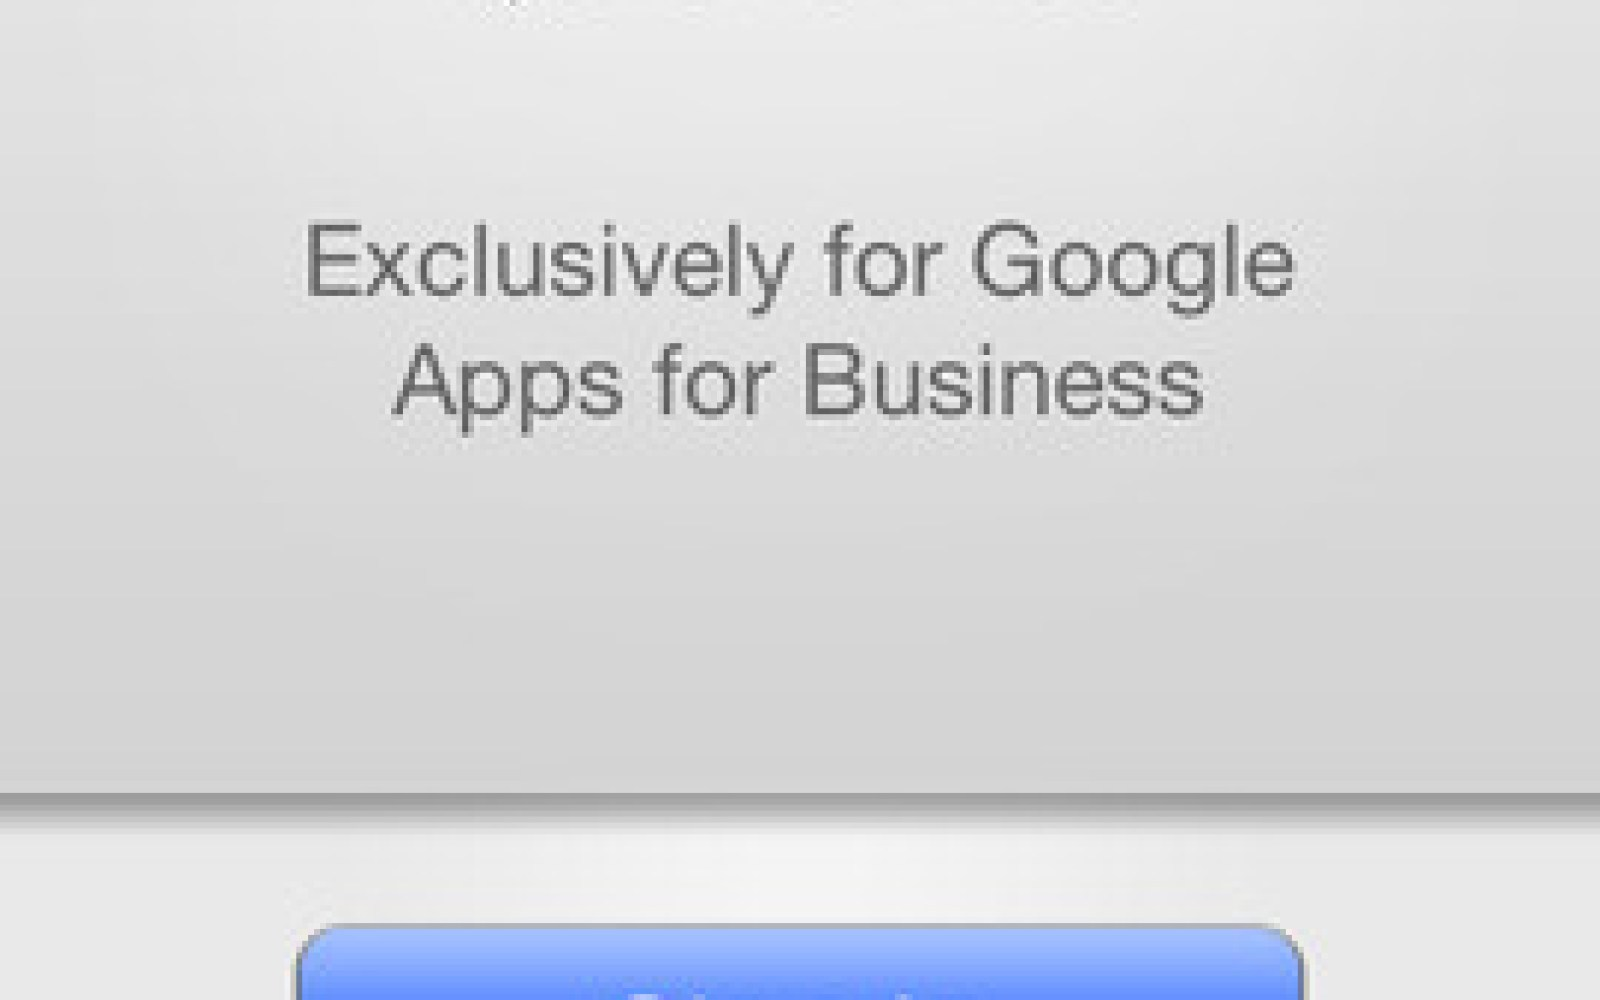 Google releases free Quickoffice iPhone app for Google Apps for Business customers